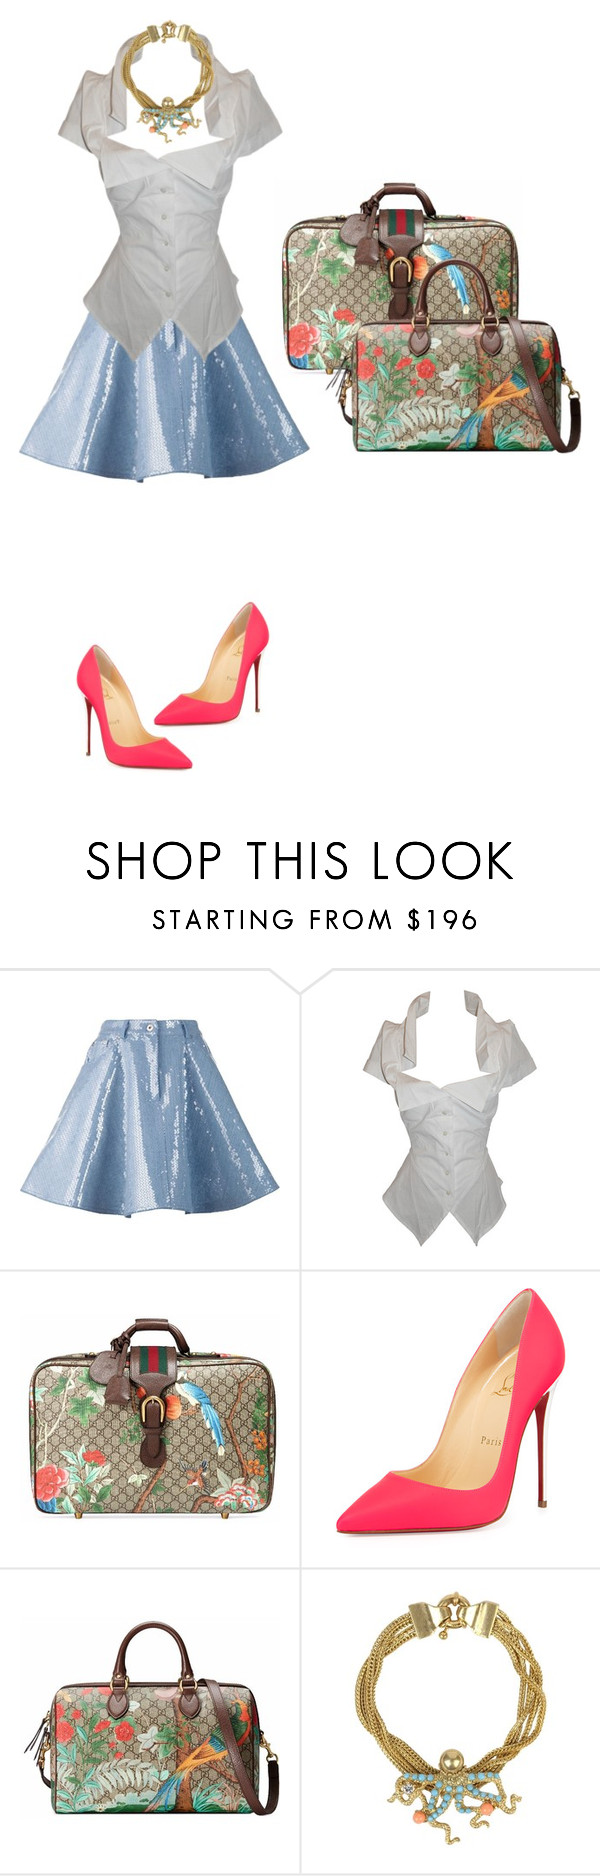 """""""Princess Sophia."""" by misnik ❤ liked on Polyvore featuring Moschino, Vivienne Westwood, Gucci, Christian Louboutin, Les Néréides, women's clothing, women, female, woman and misses"""